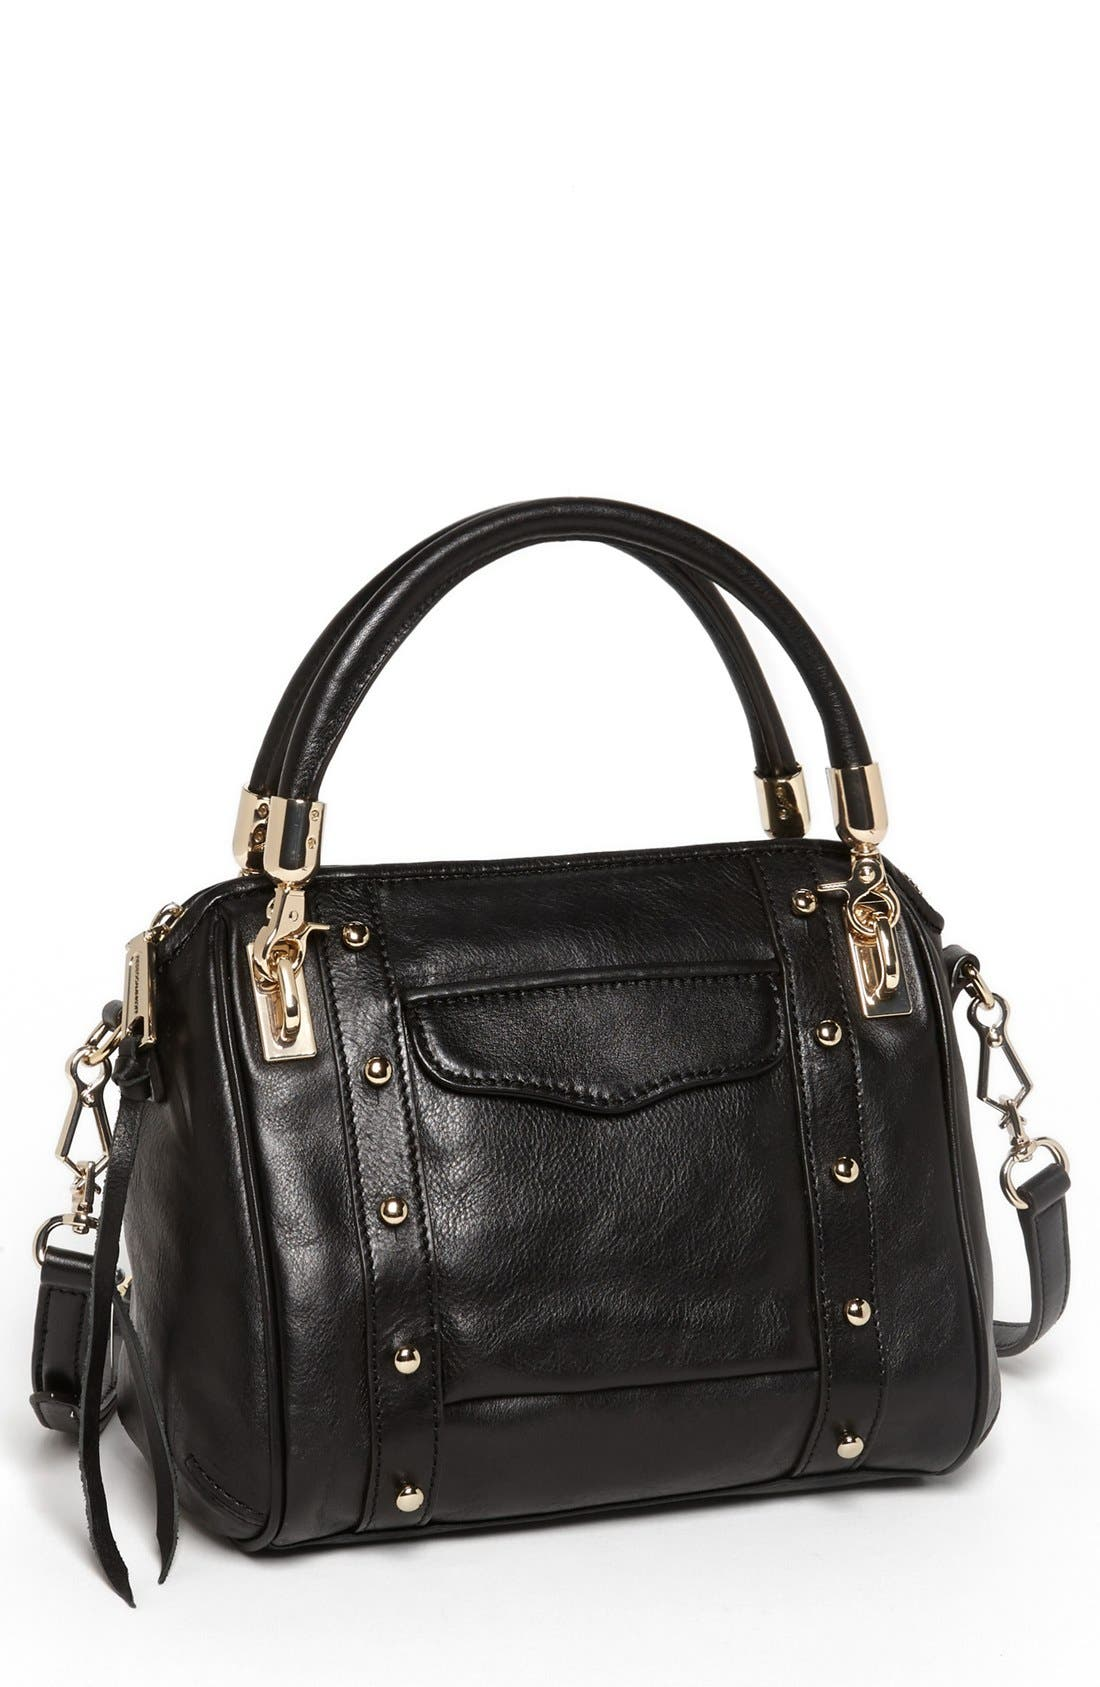 Alternate Image 1 Selected - Rebecca Minkoff 'Mini Cupid' Crossbody Bag